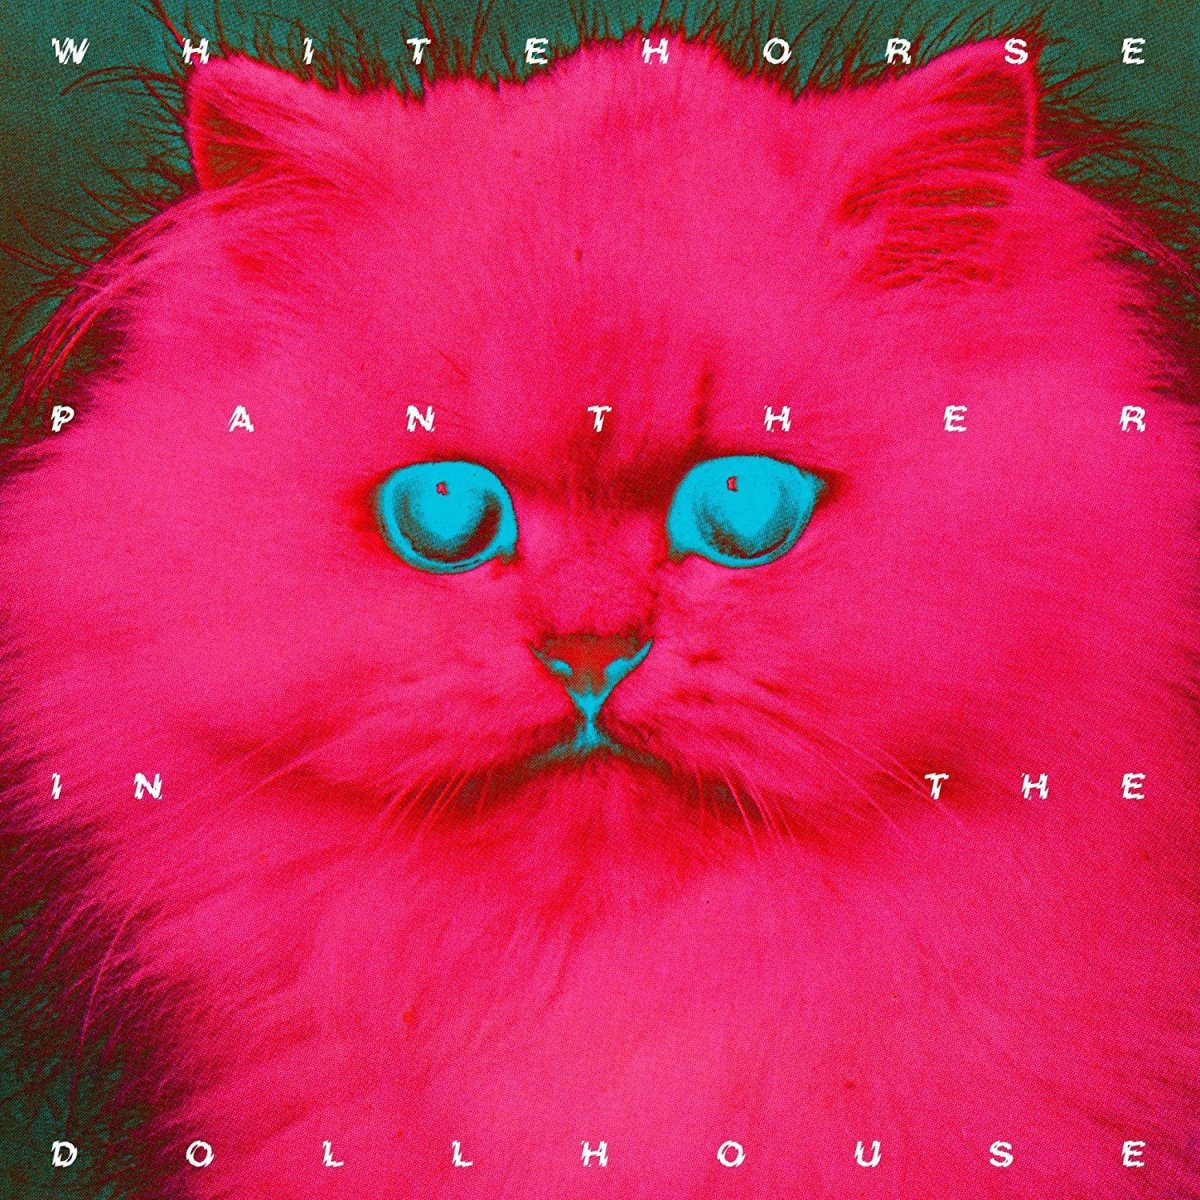 Whitehorse Panther in the Dollhouse Review